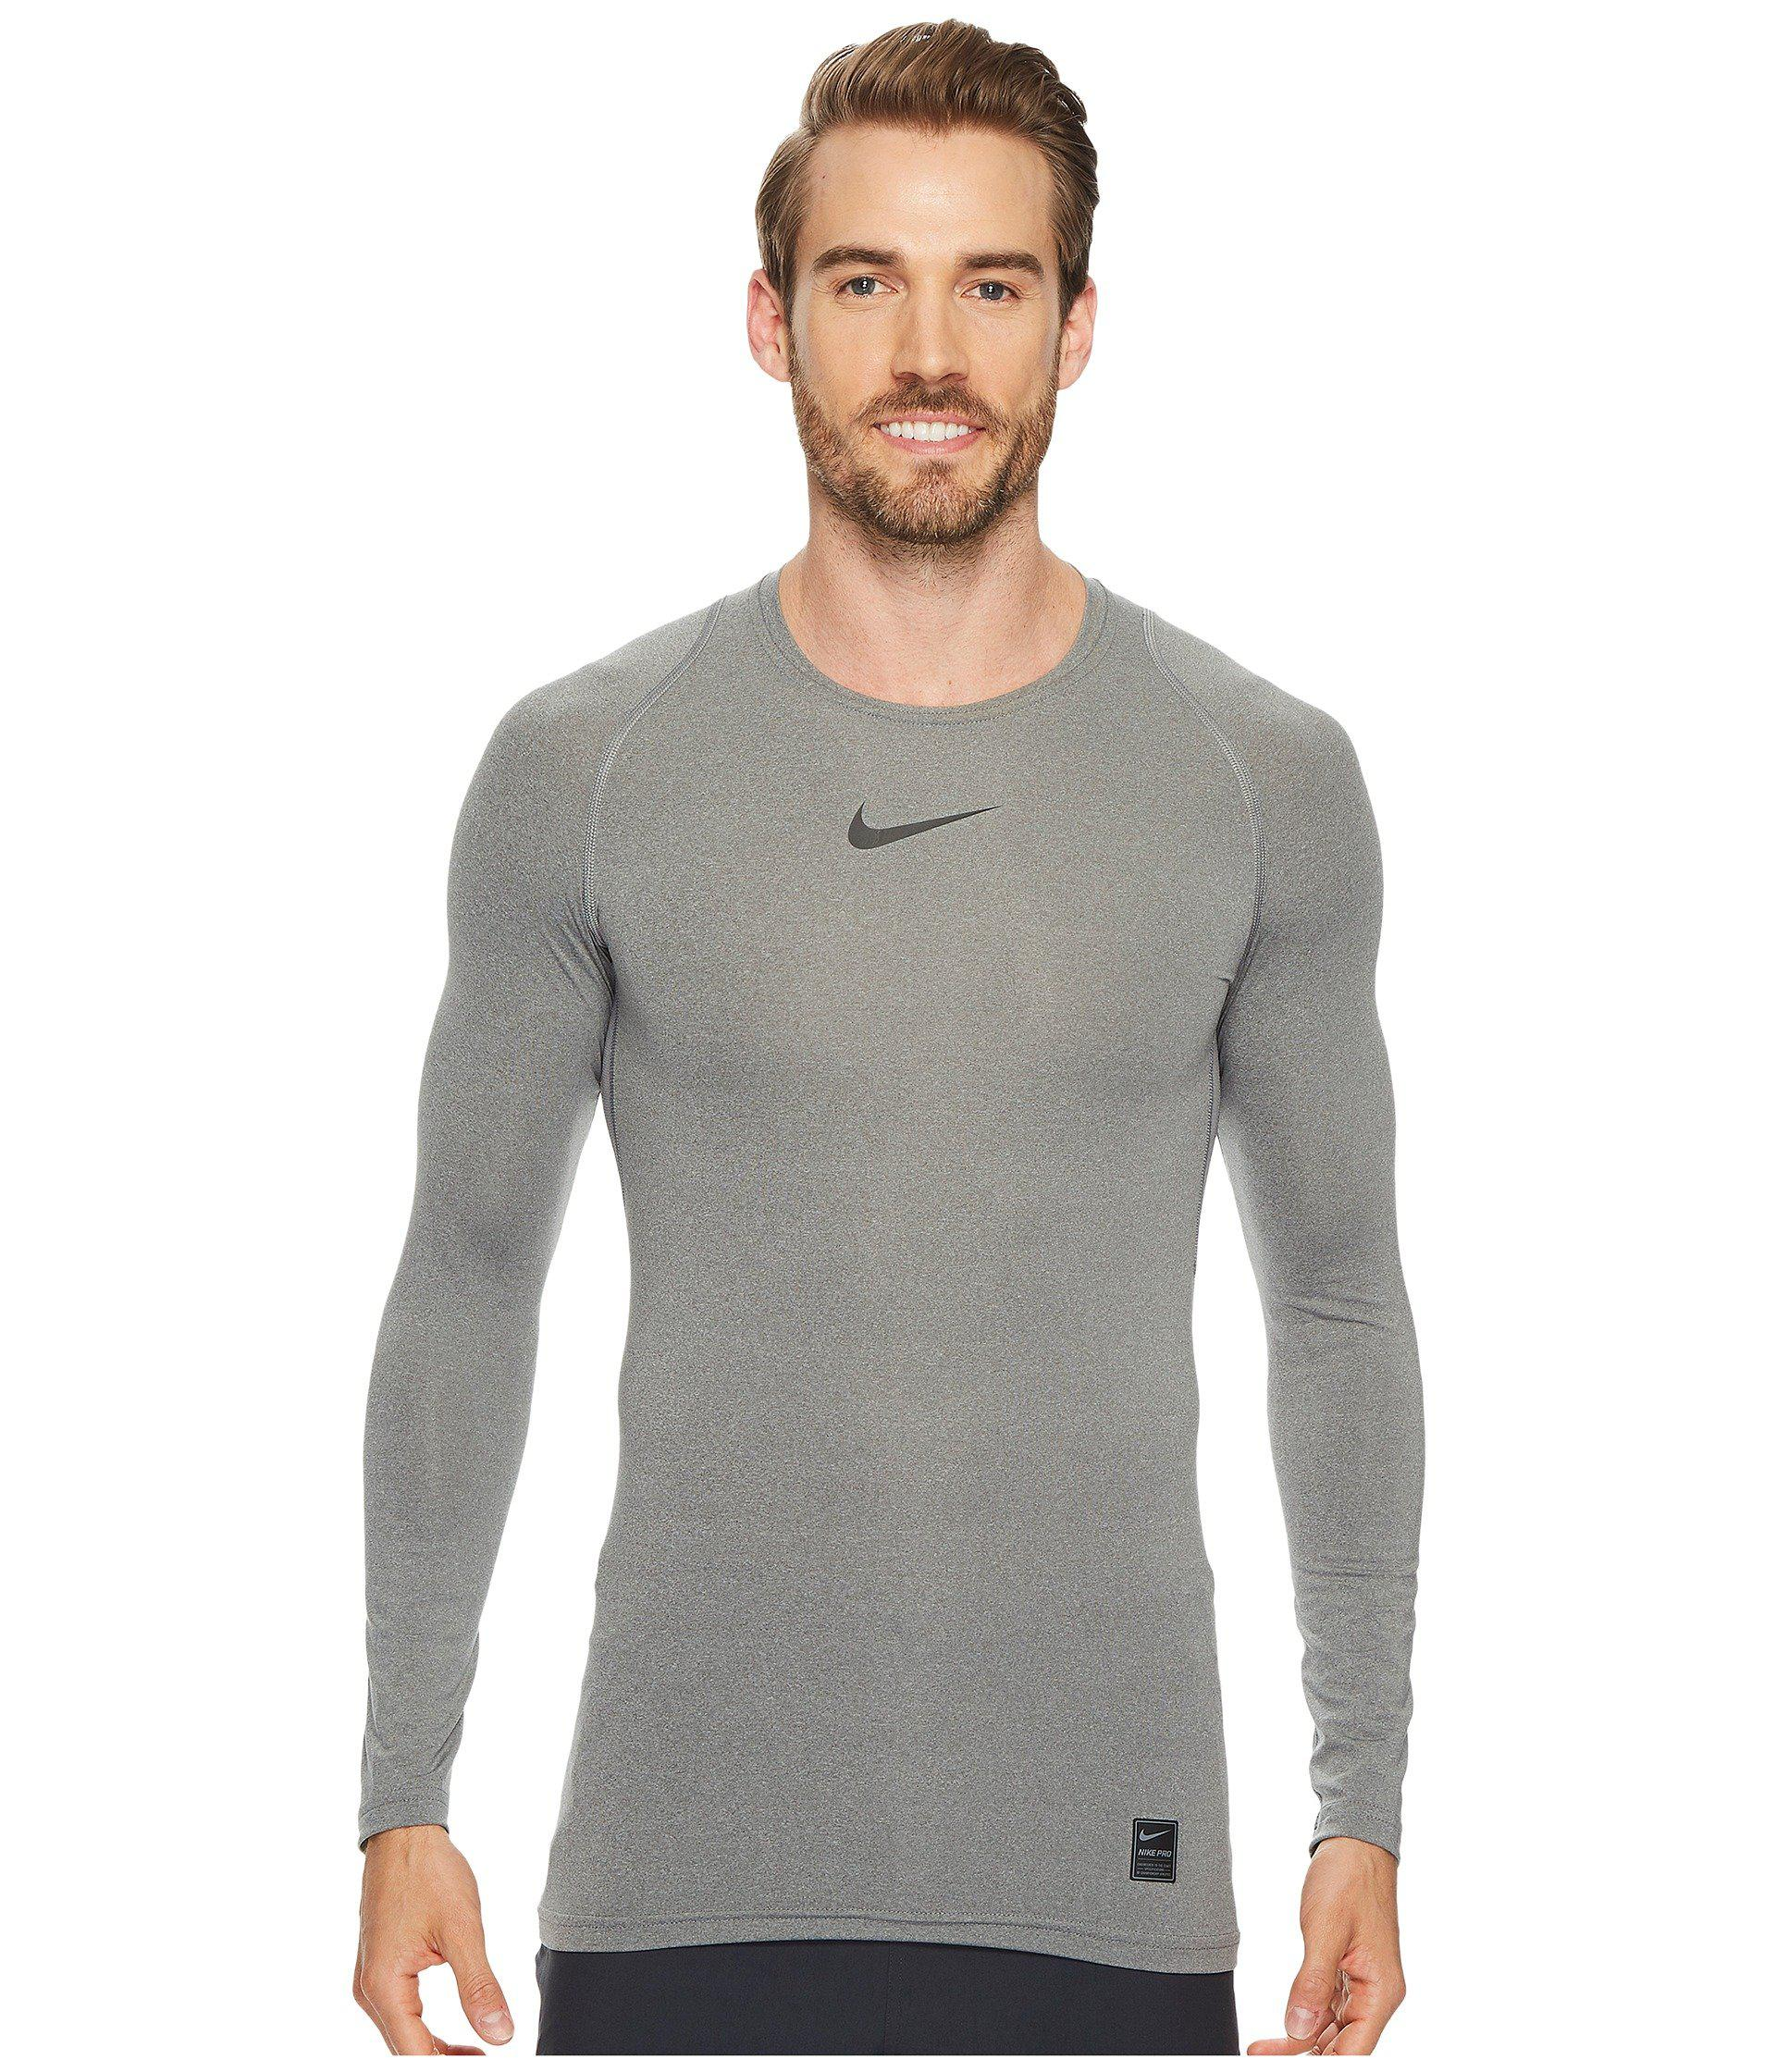 bf63a5fab925f Lyst - Nike Pro Compression Long Sleeve Training Top in Gray for Men ...